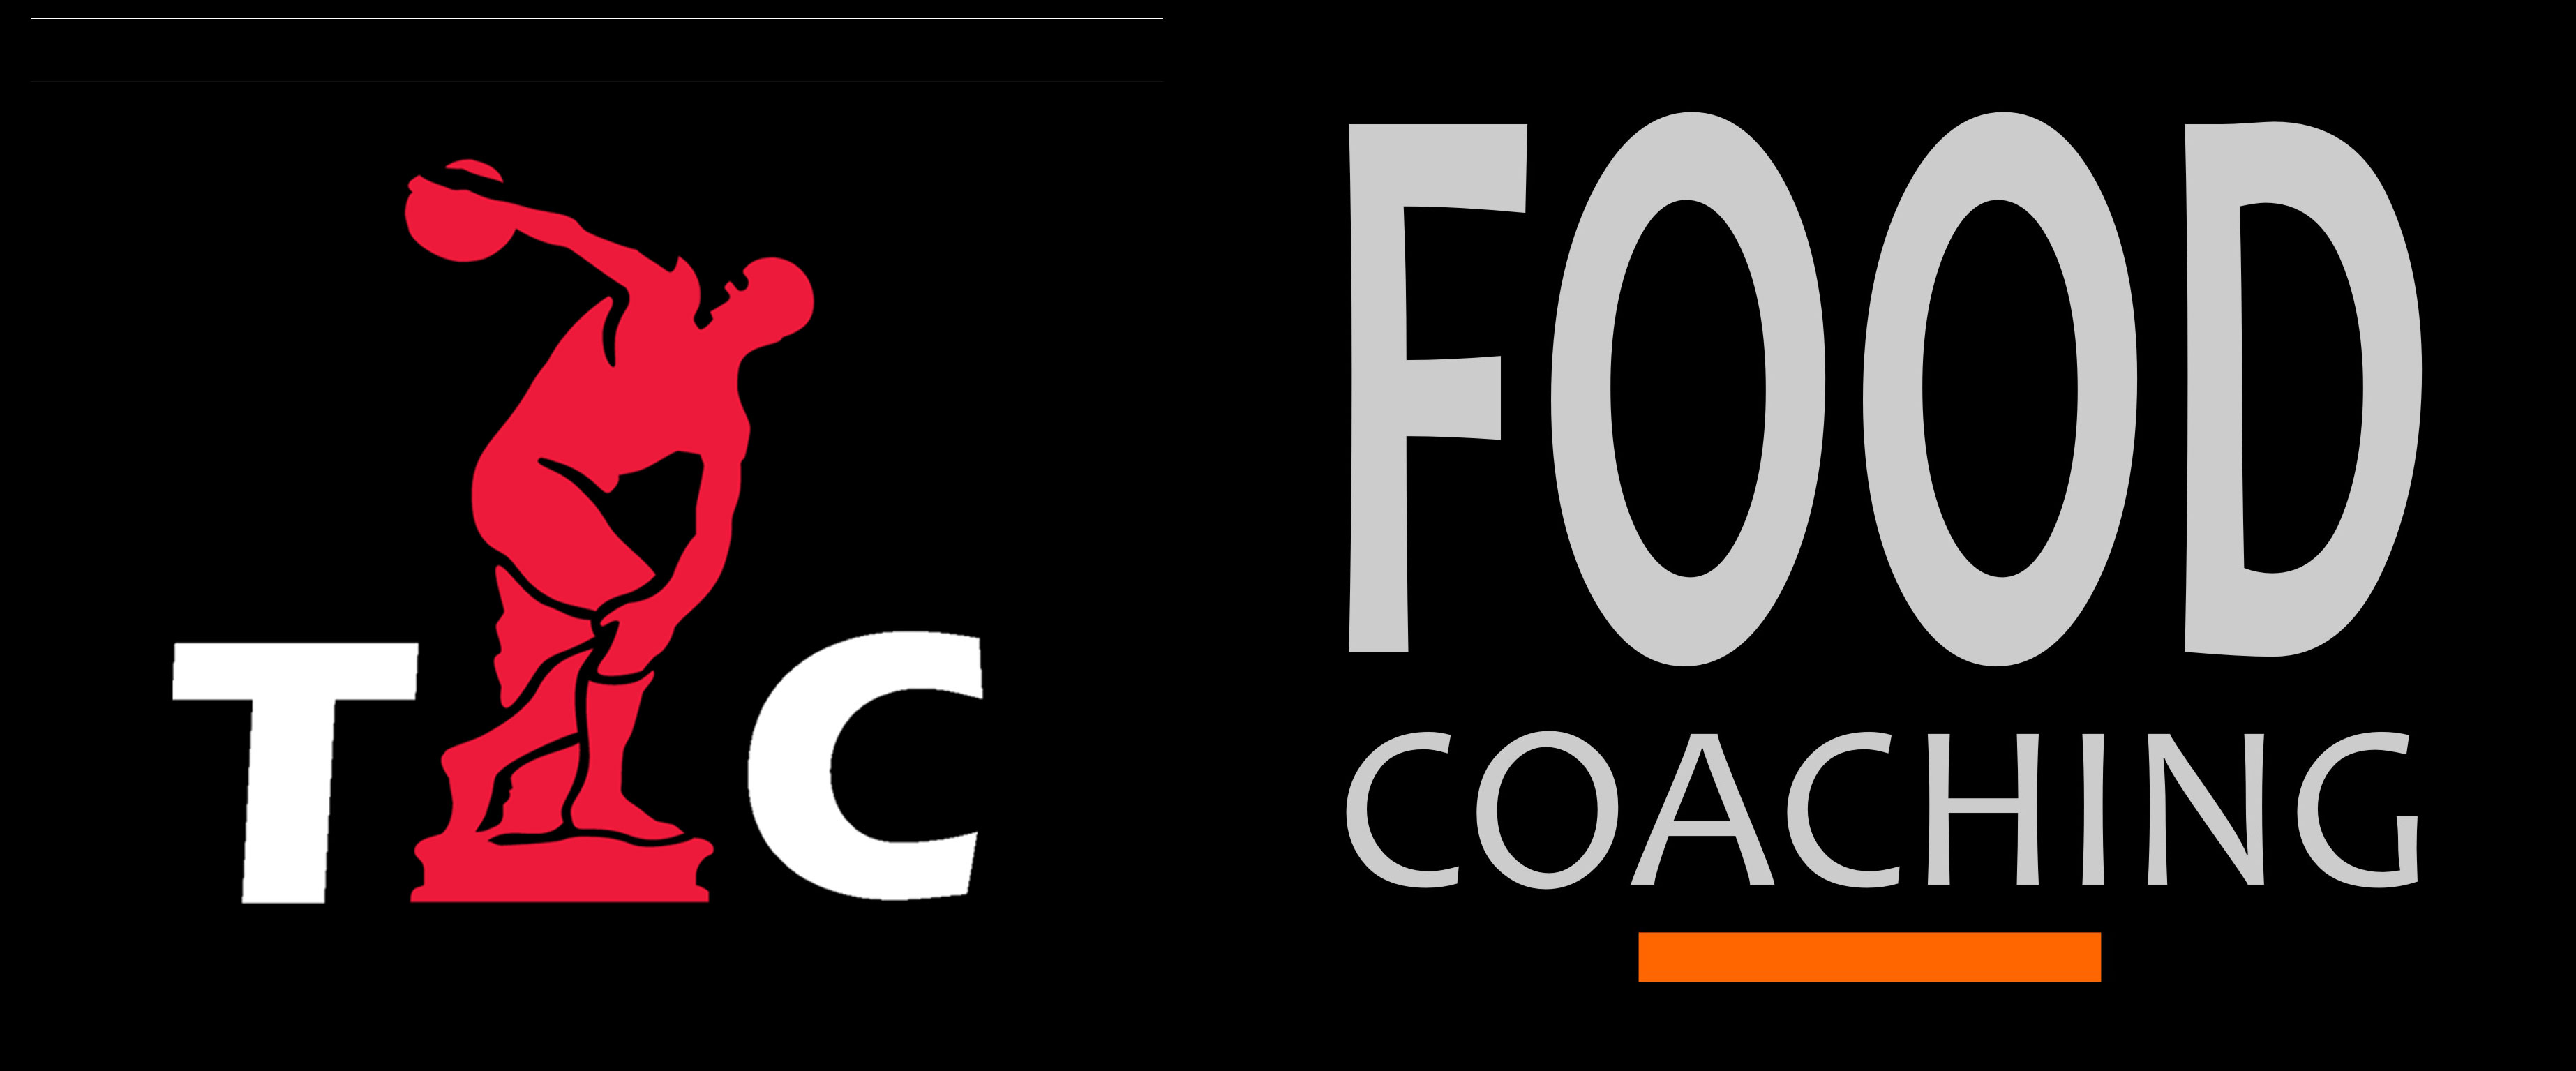 tc-food-coaching logo